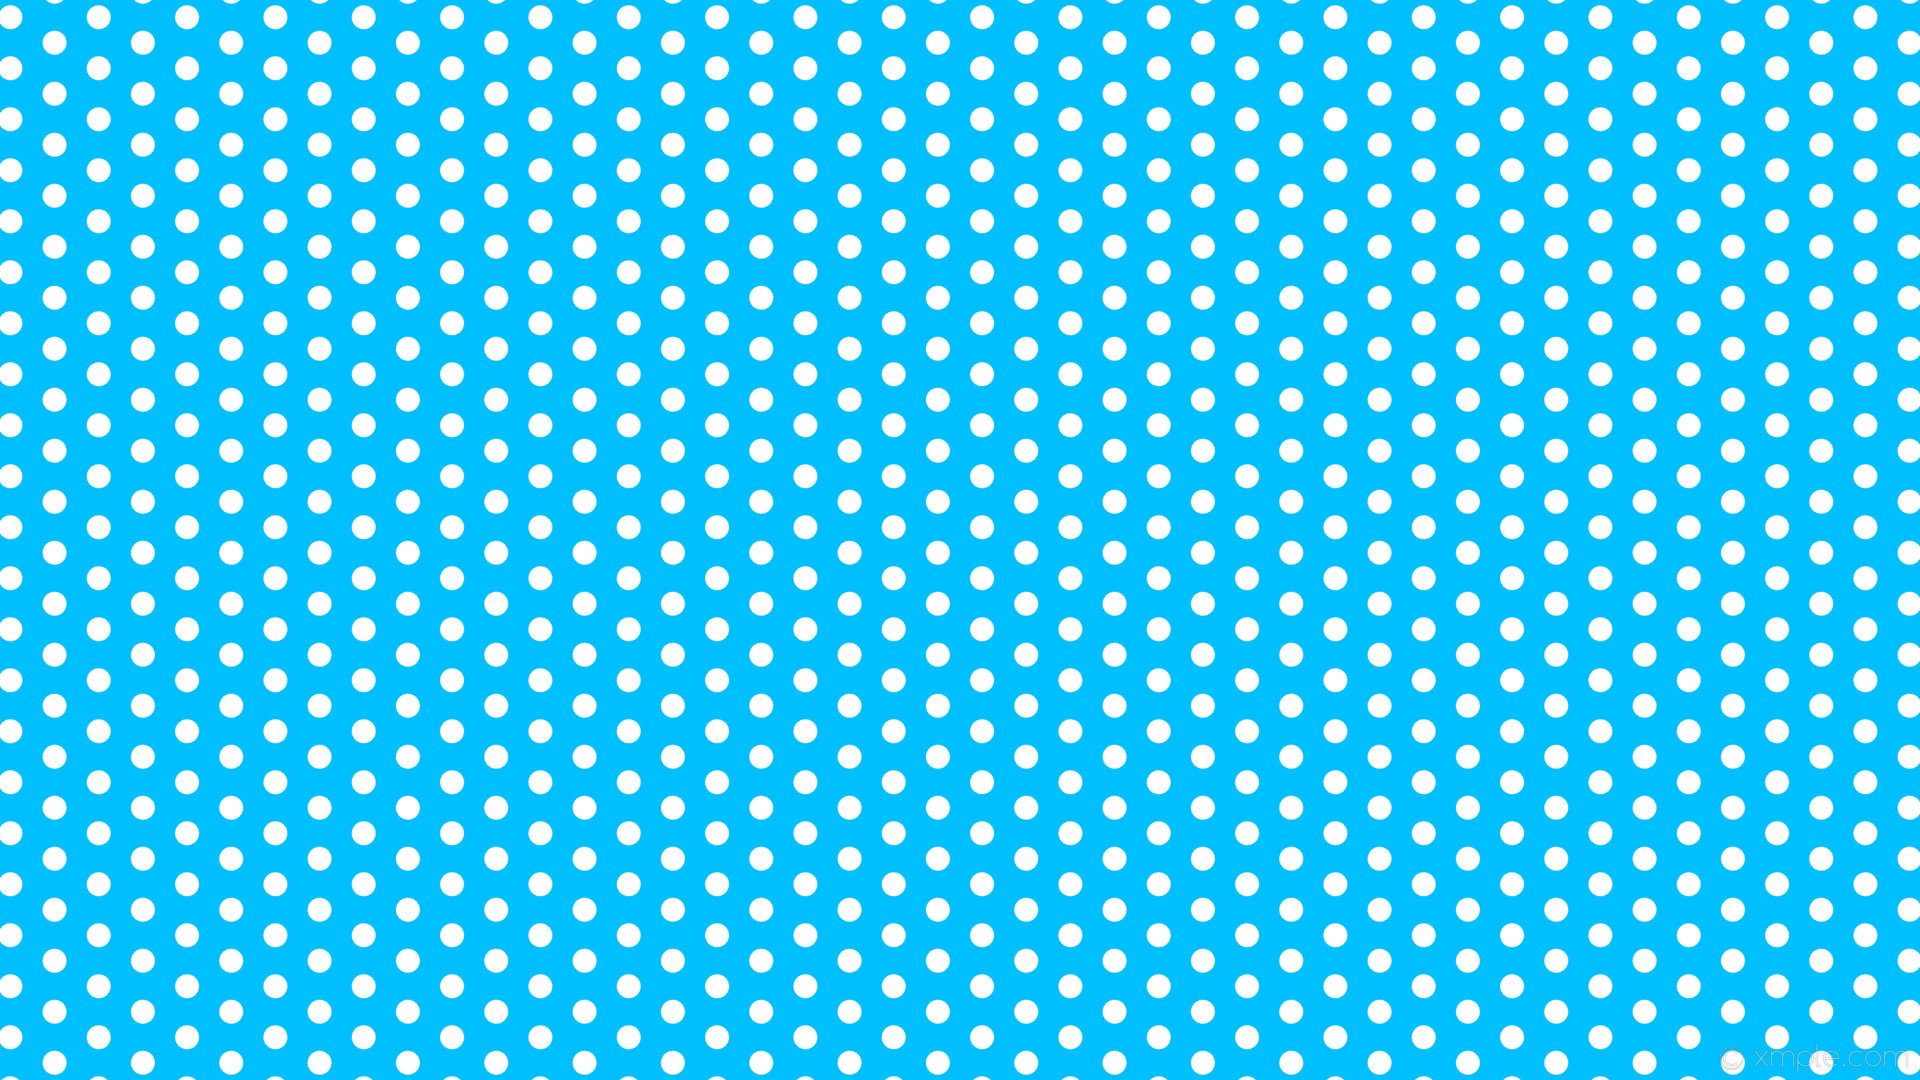 wallpaper hexagon blue white polka dots deep sky blue #00bfff #ffffff  diagonal 30°